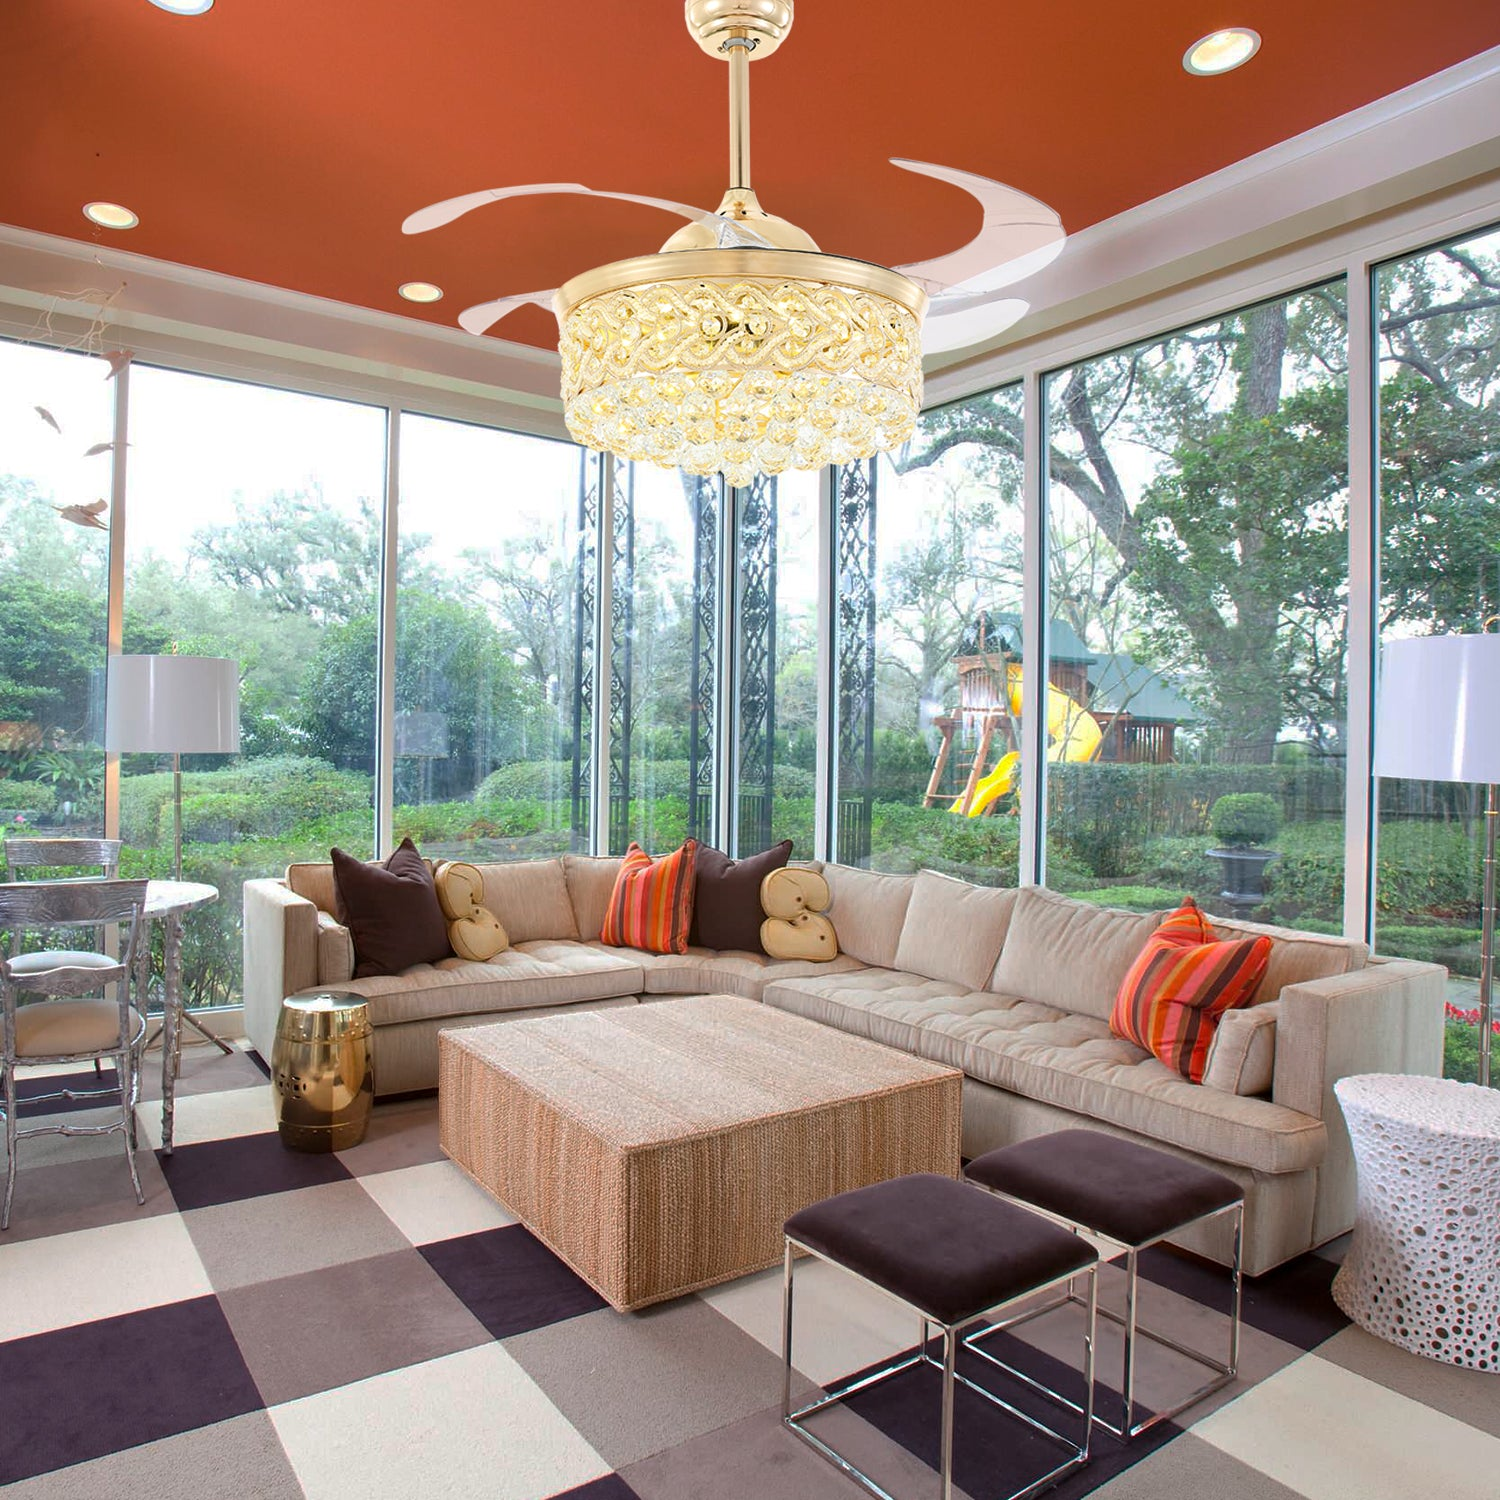 Retractable Crystal Ceiling Fan With Gold Finish - Living Room